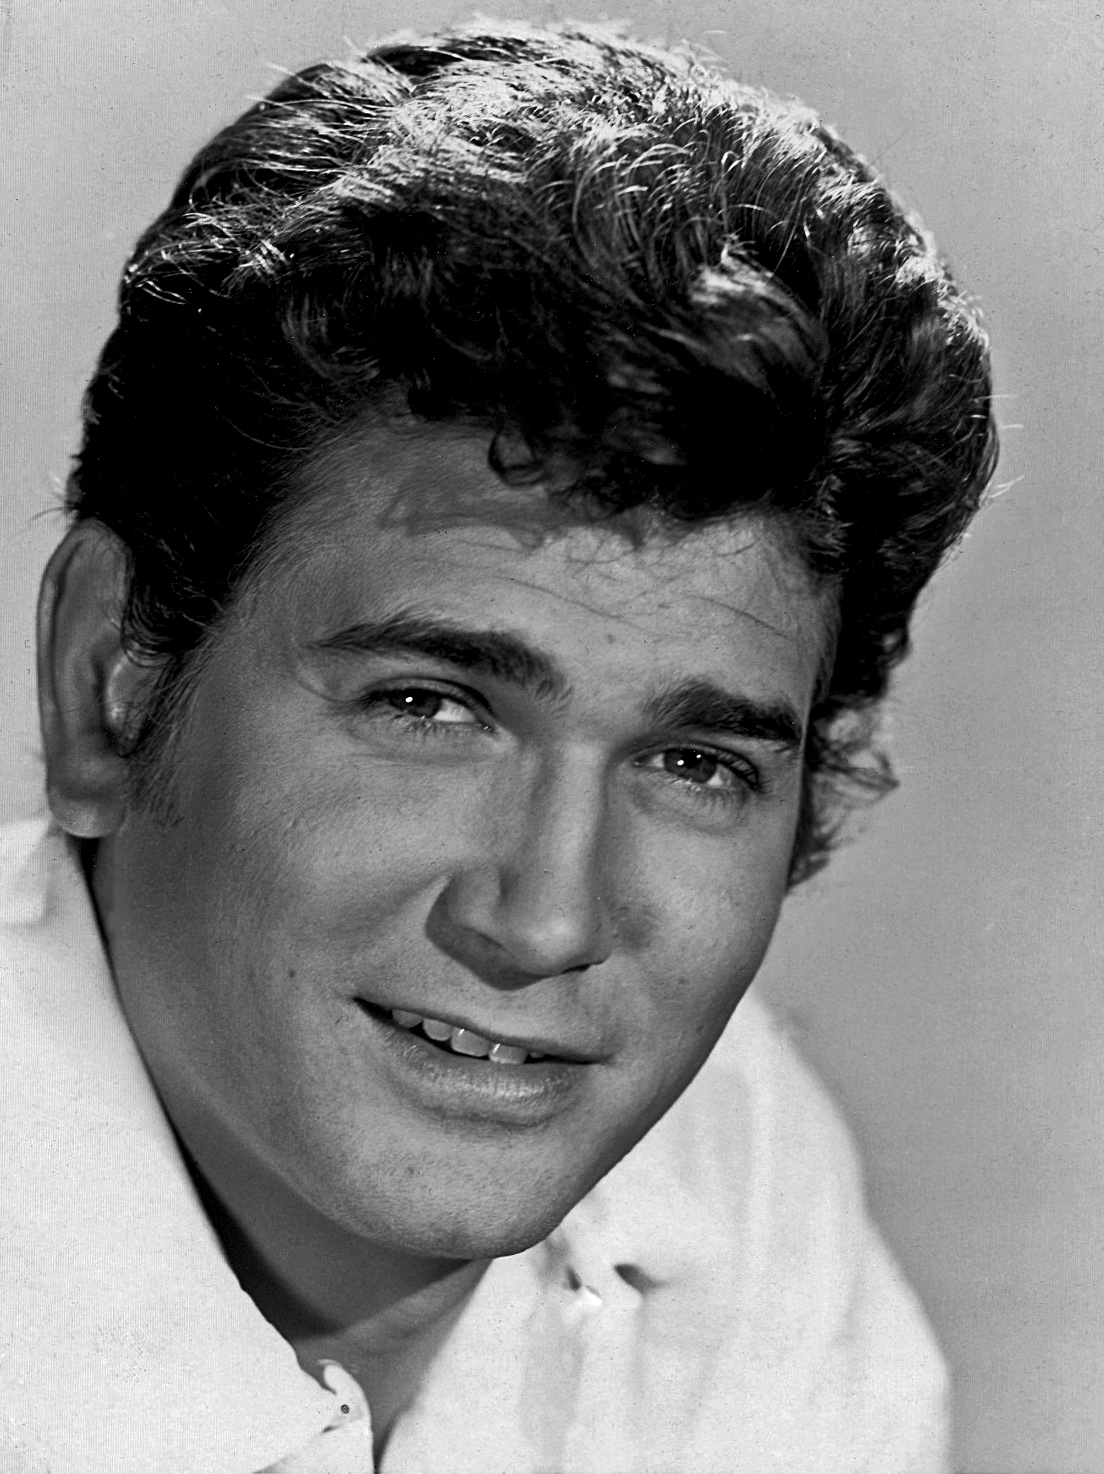 michael landon - wikipedia